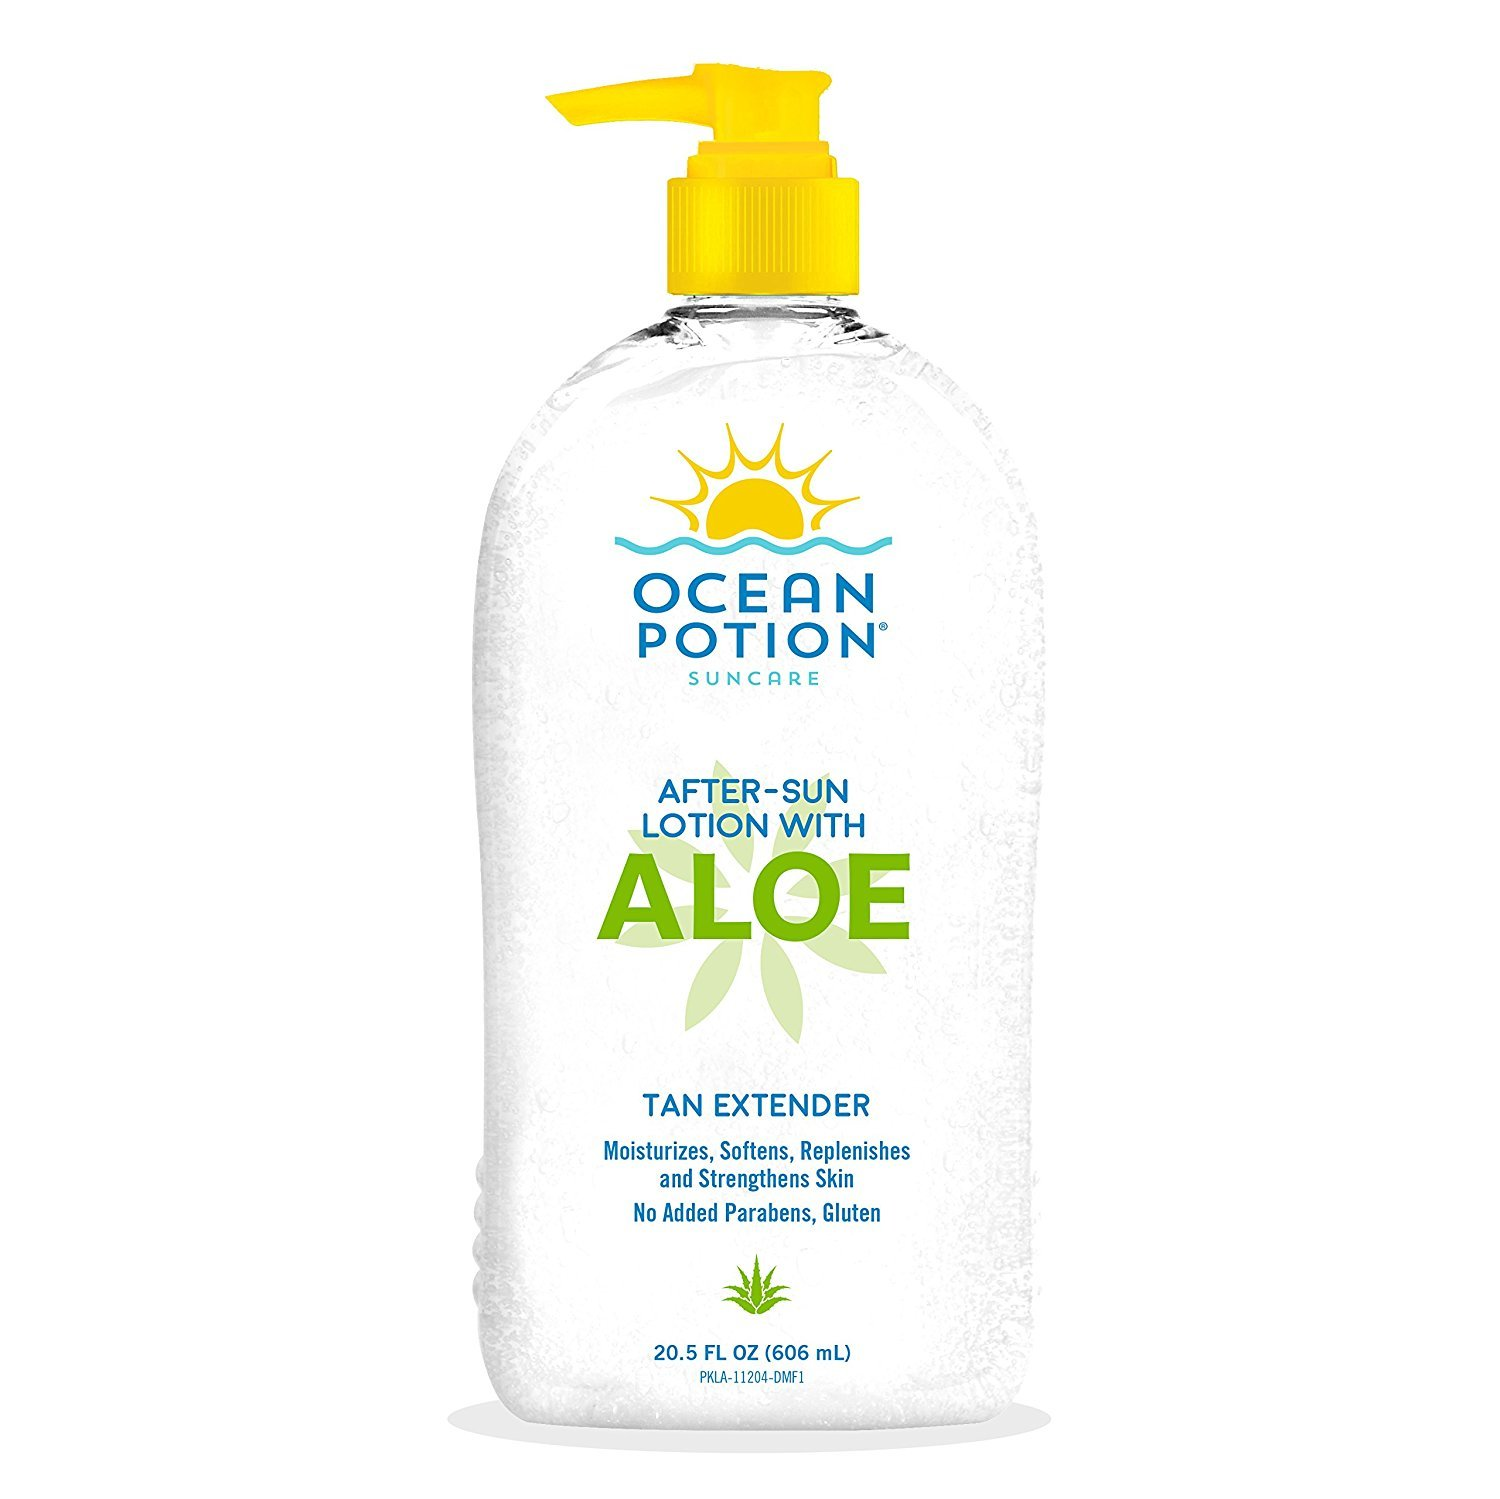 Ocean Potion After-Sun Aloe Lotion 20.5 Ounce Pump Tan Extender (606ml) (2 Pack) SHOMALVI3701